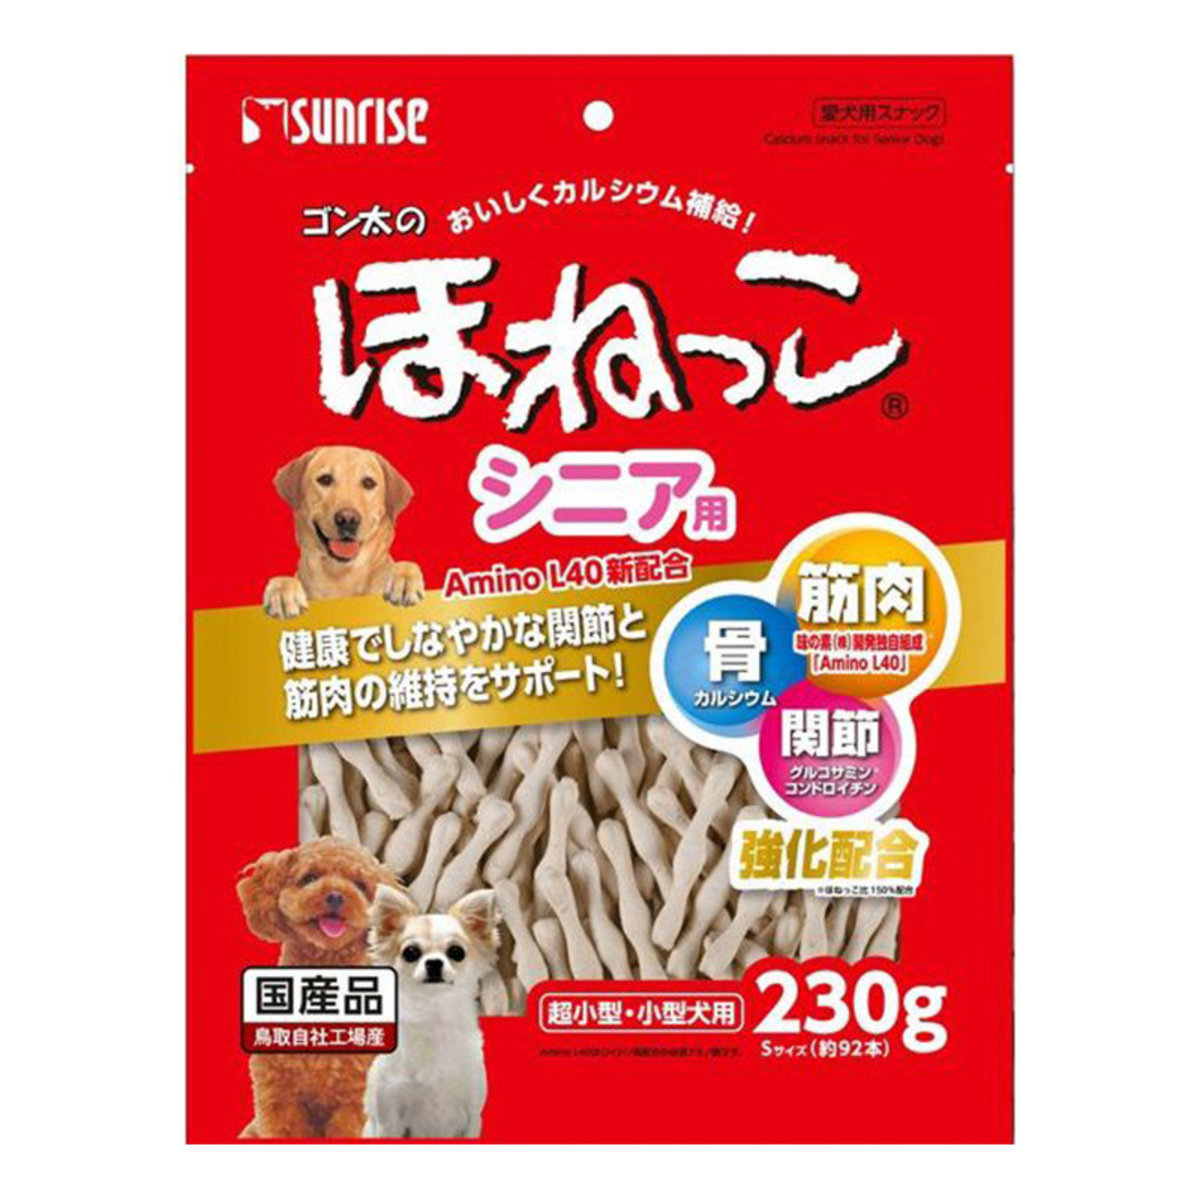 SSB-019 Soft type calcium snack for Dogs S 230g